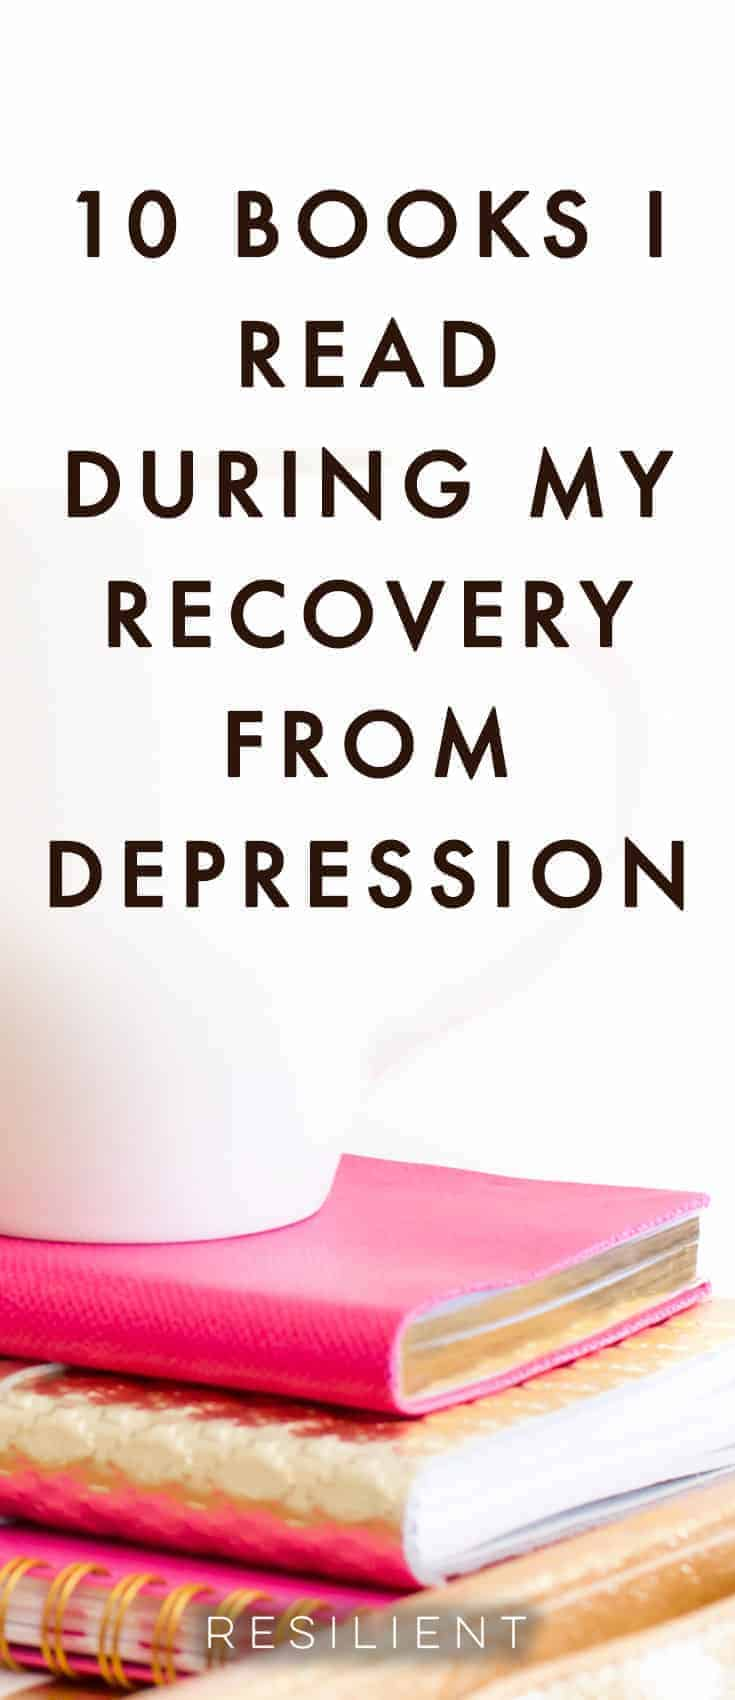 I was reading through old notes on Evernote the other day and I stumbled across a list of books I read during my recovery from depression. By that I mean the time after coming home when I had nothing better to do with my time than actually get better, so that's what I did. Here are 10 books I read during my recovery that I found to be helpful (there were more books, but I didn't include them if they weren't good :)).